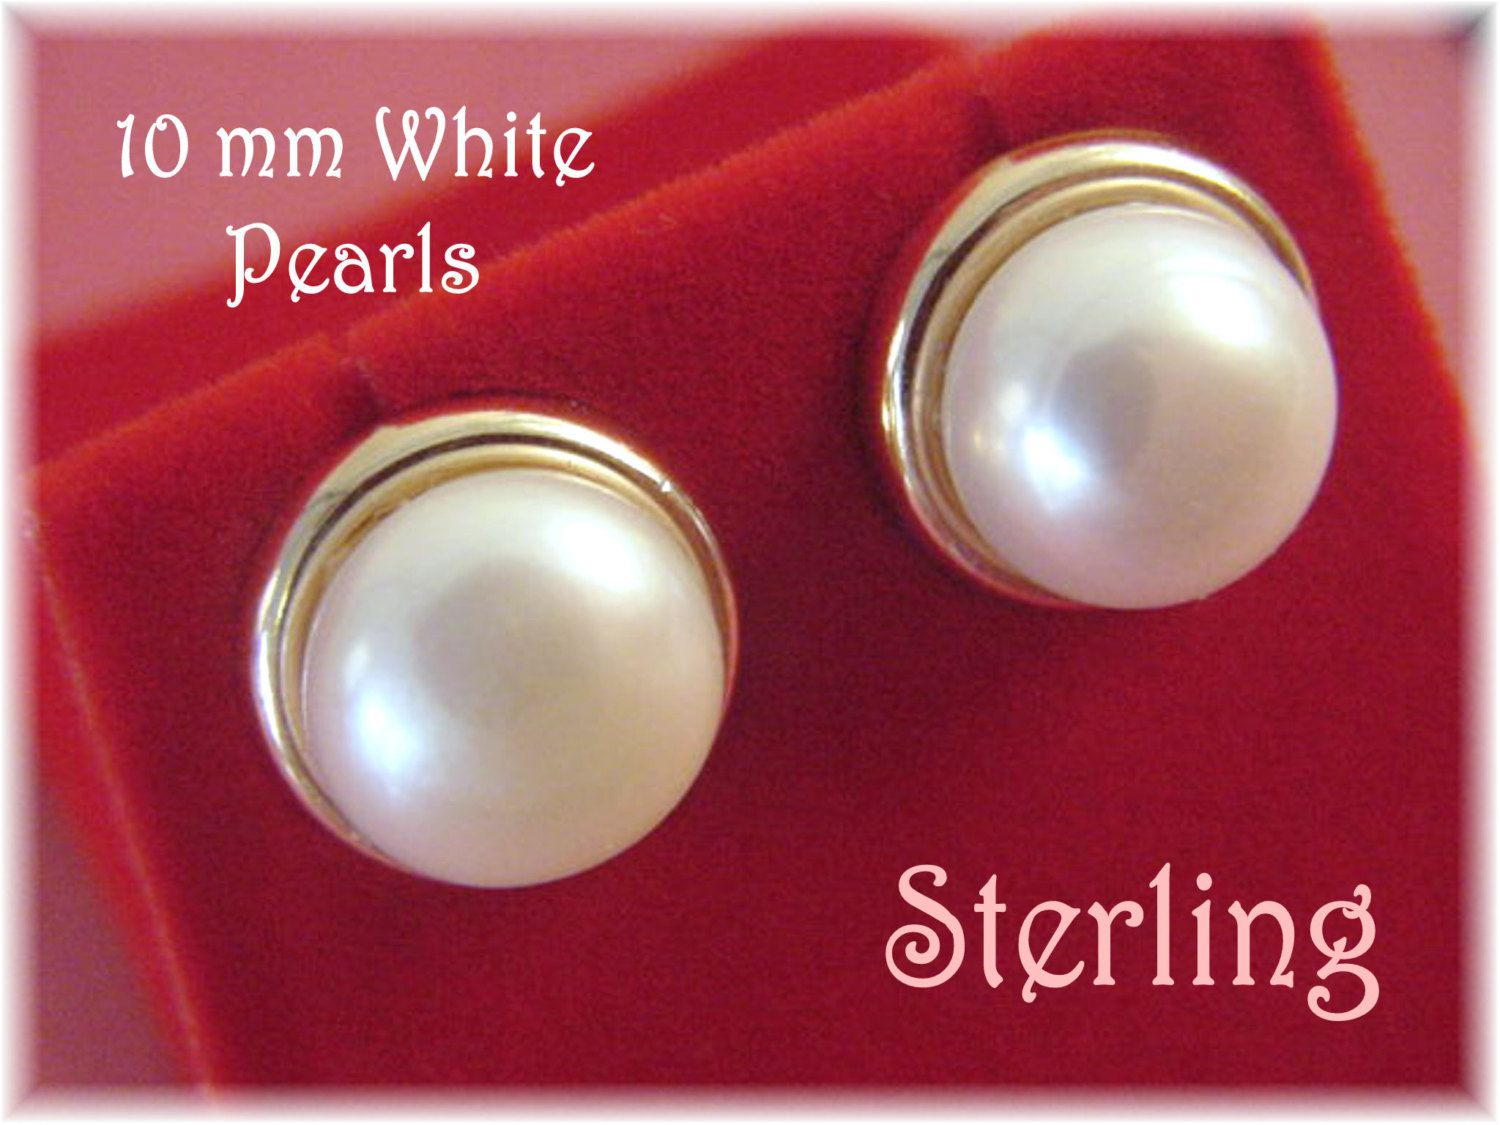 Akoya - 10 mm Genuine White Pearl Gold Vermeil Sterling Silver Framed Stud Earrings - Iridescent Glow - Red Velvet Gift Box -  FREE SHIPPING